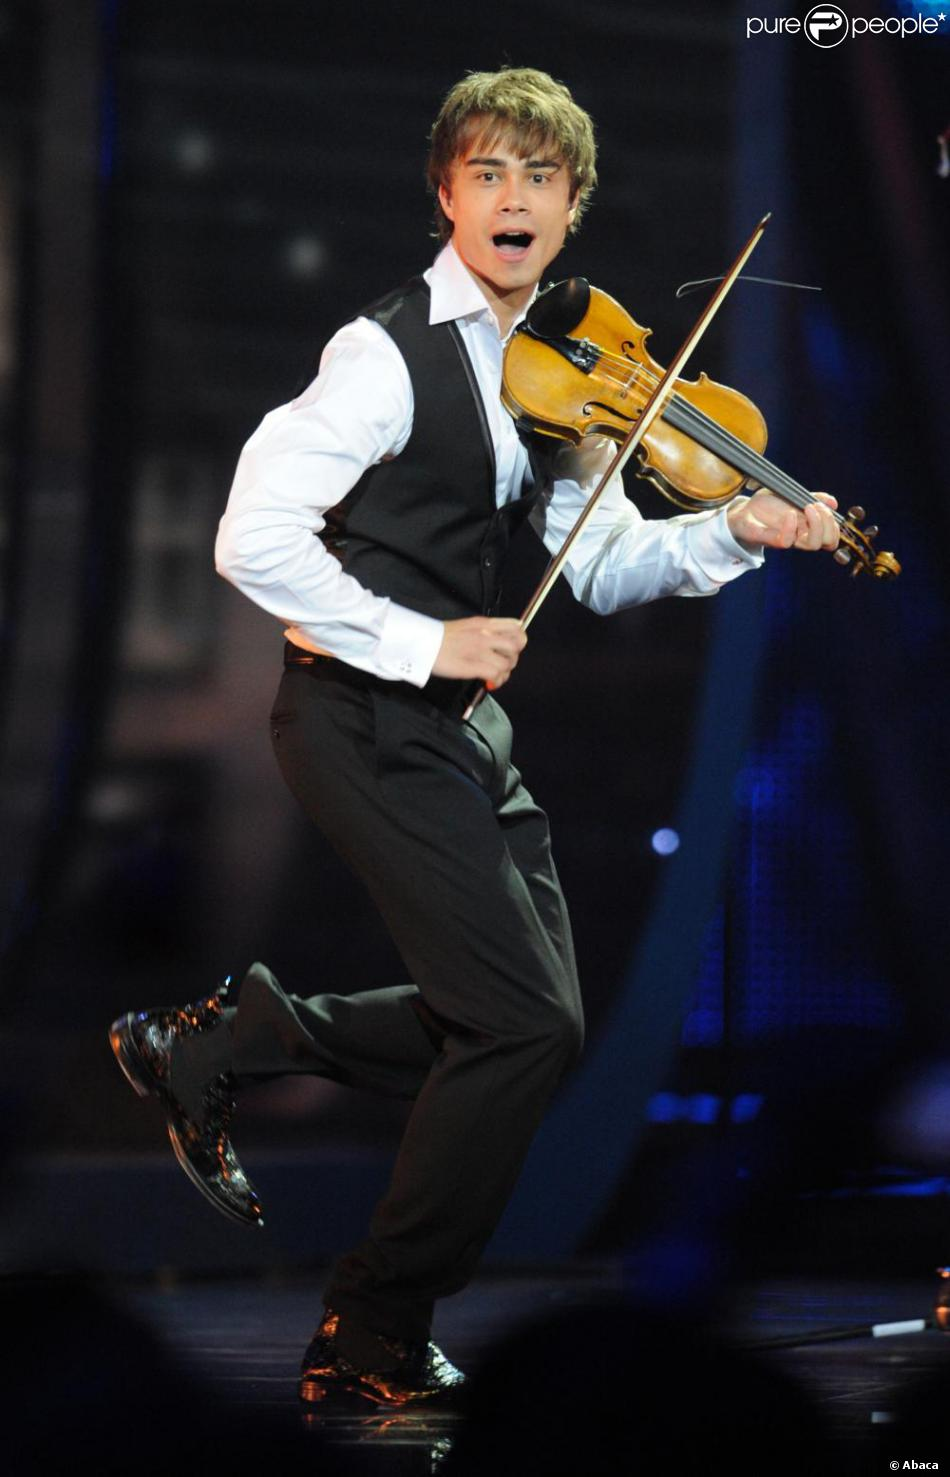 alexander rybak gagnant de l 39 eurovision 2009. Black Bedroom Furniture Sets. Home Design Ideas